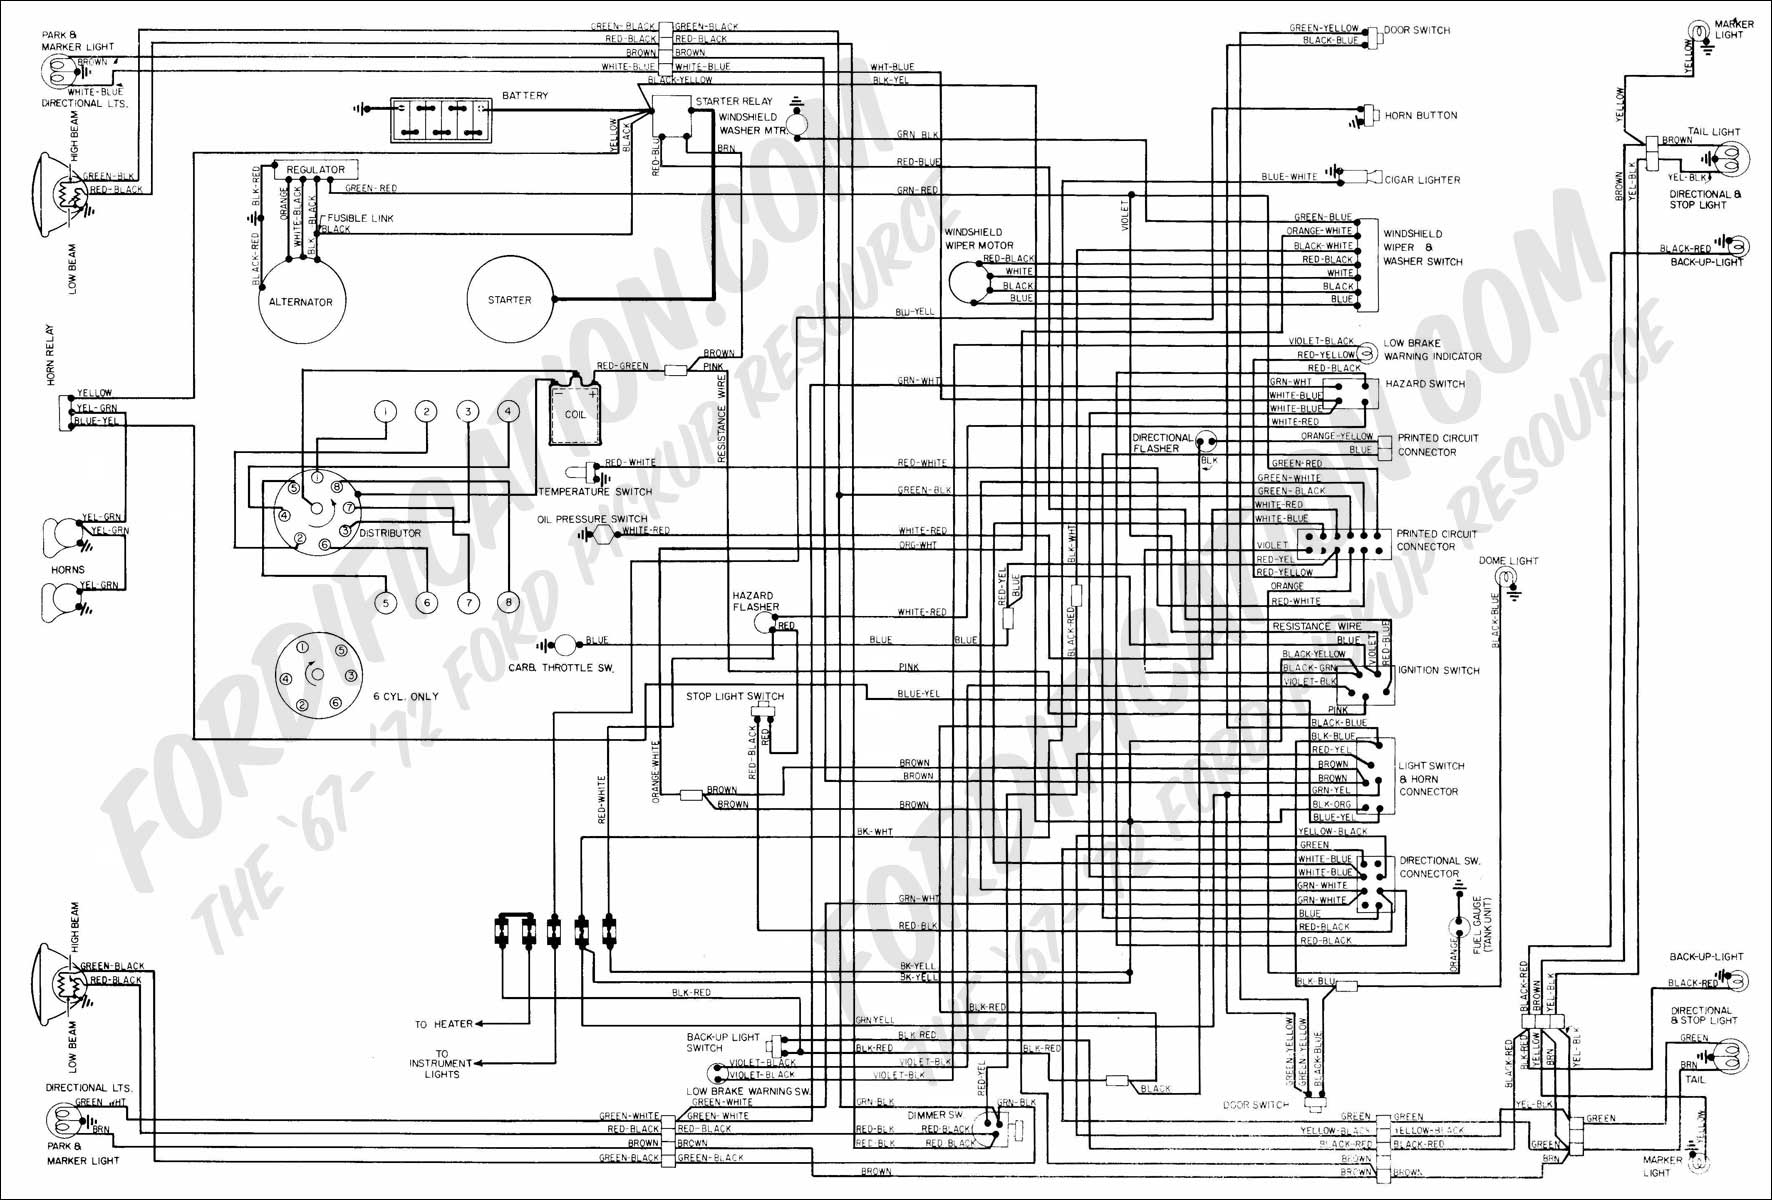 2007 F650 Wiring Harness Diagram - custom project wiring diagram F Fuel Pump Wiring Schematic on